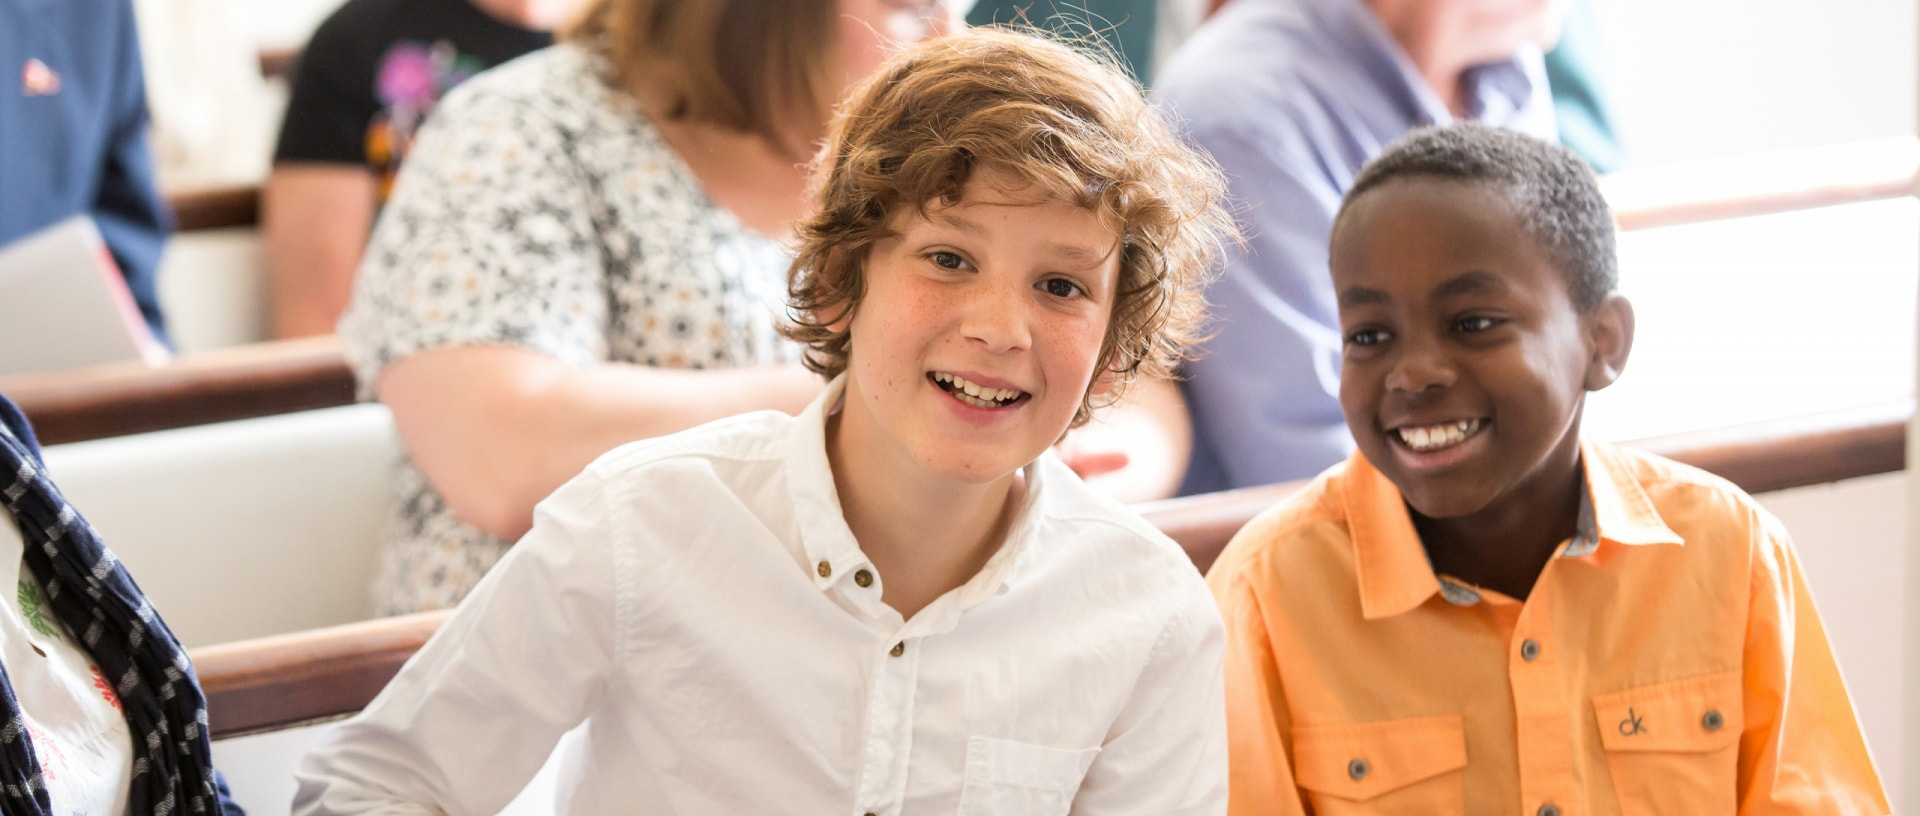 Two teenage boys smile during worship